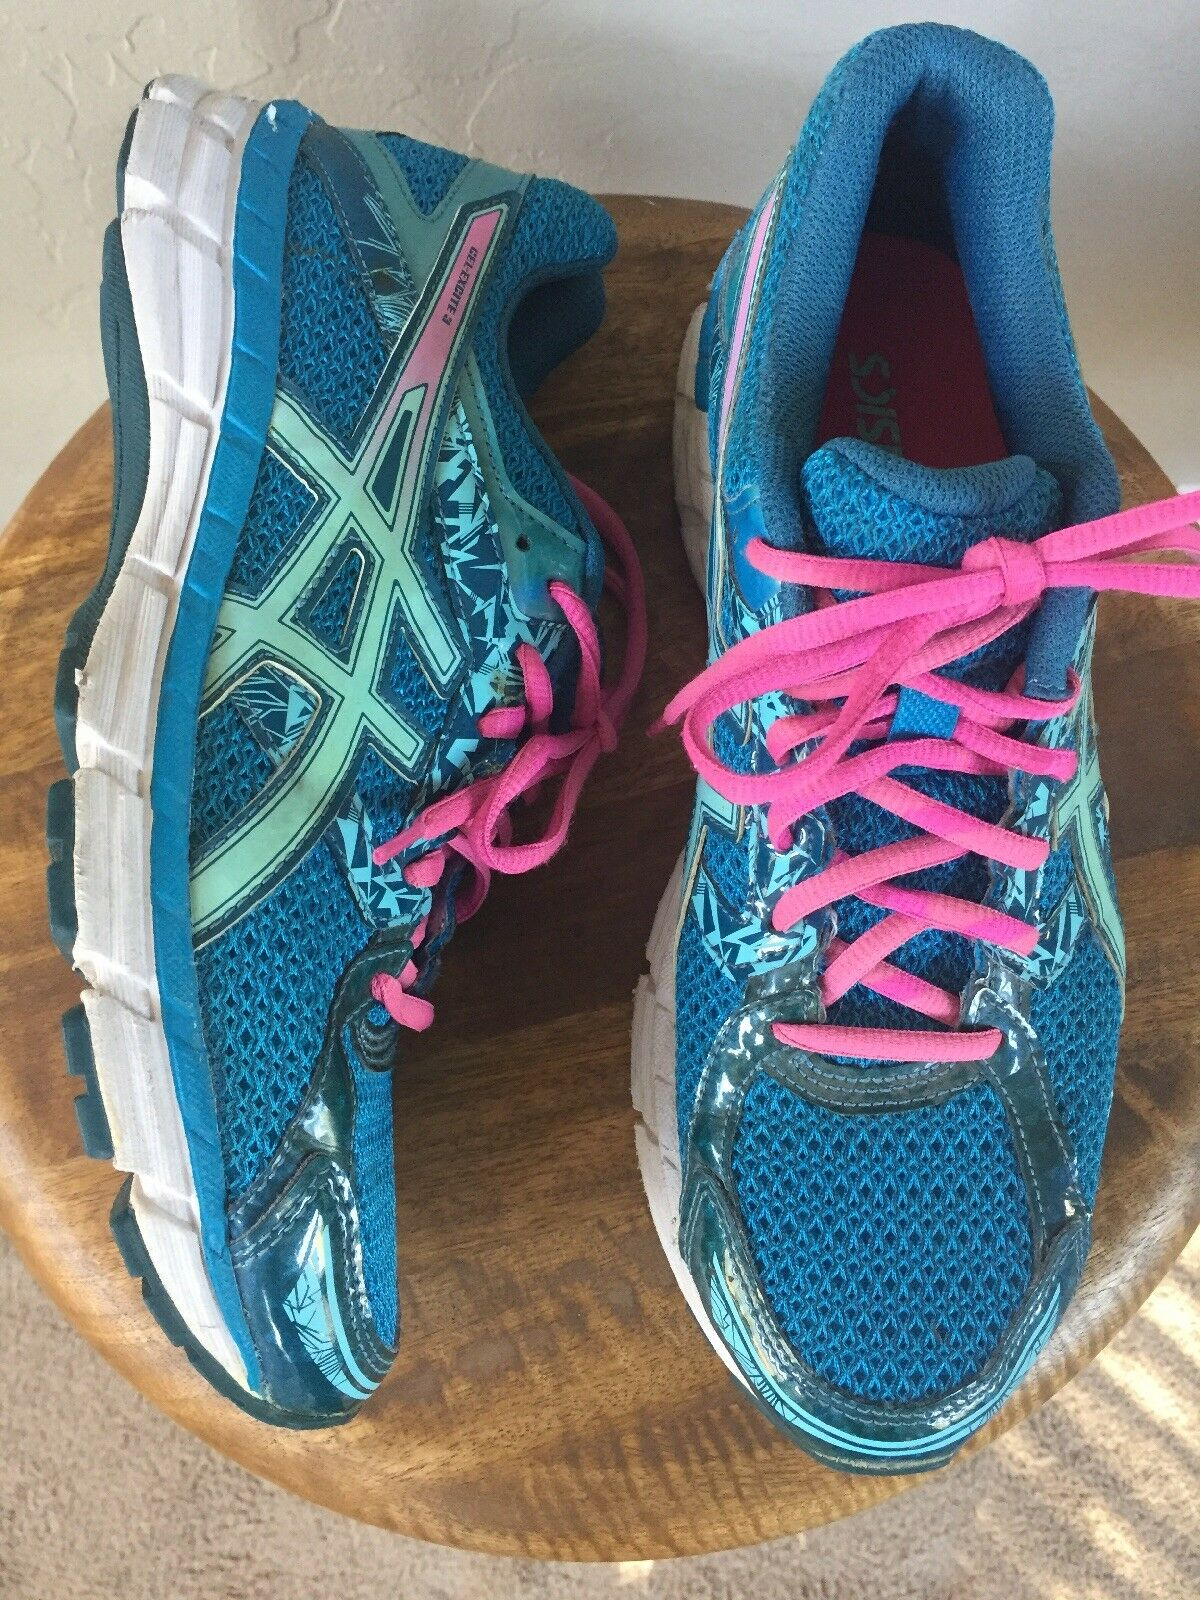 Asics Gel-Excite 3 Round Toe Synthetic Running Shoe- Size 9- Turquoise/Aqua